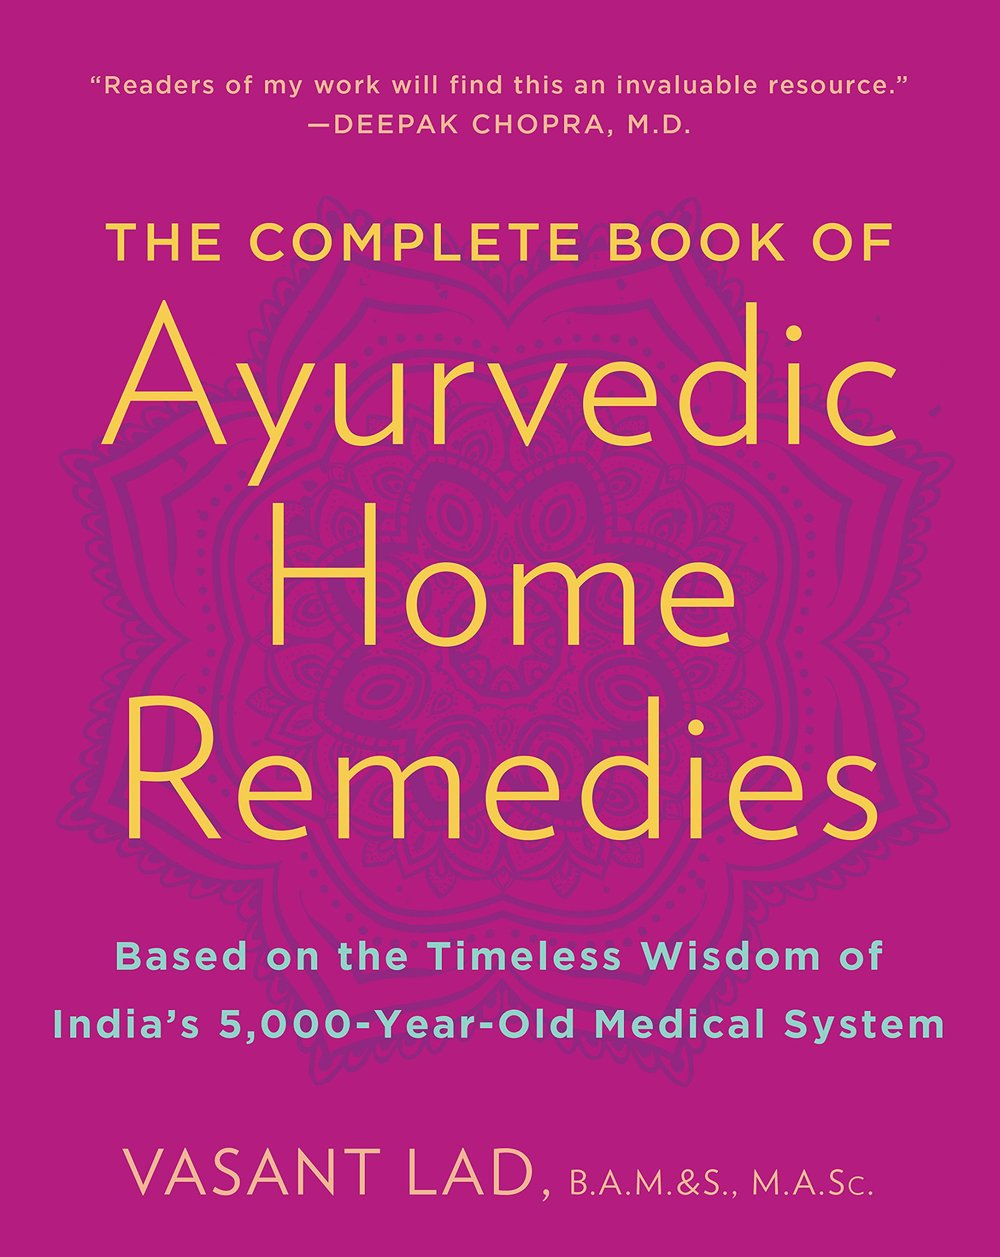 The Complete Book of Ayurvedic Home Remedies  Based on the Timeless Wisdom of India's 5,000-Year-Old Medical System.jpg